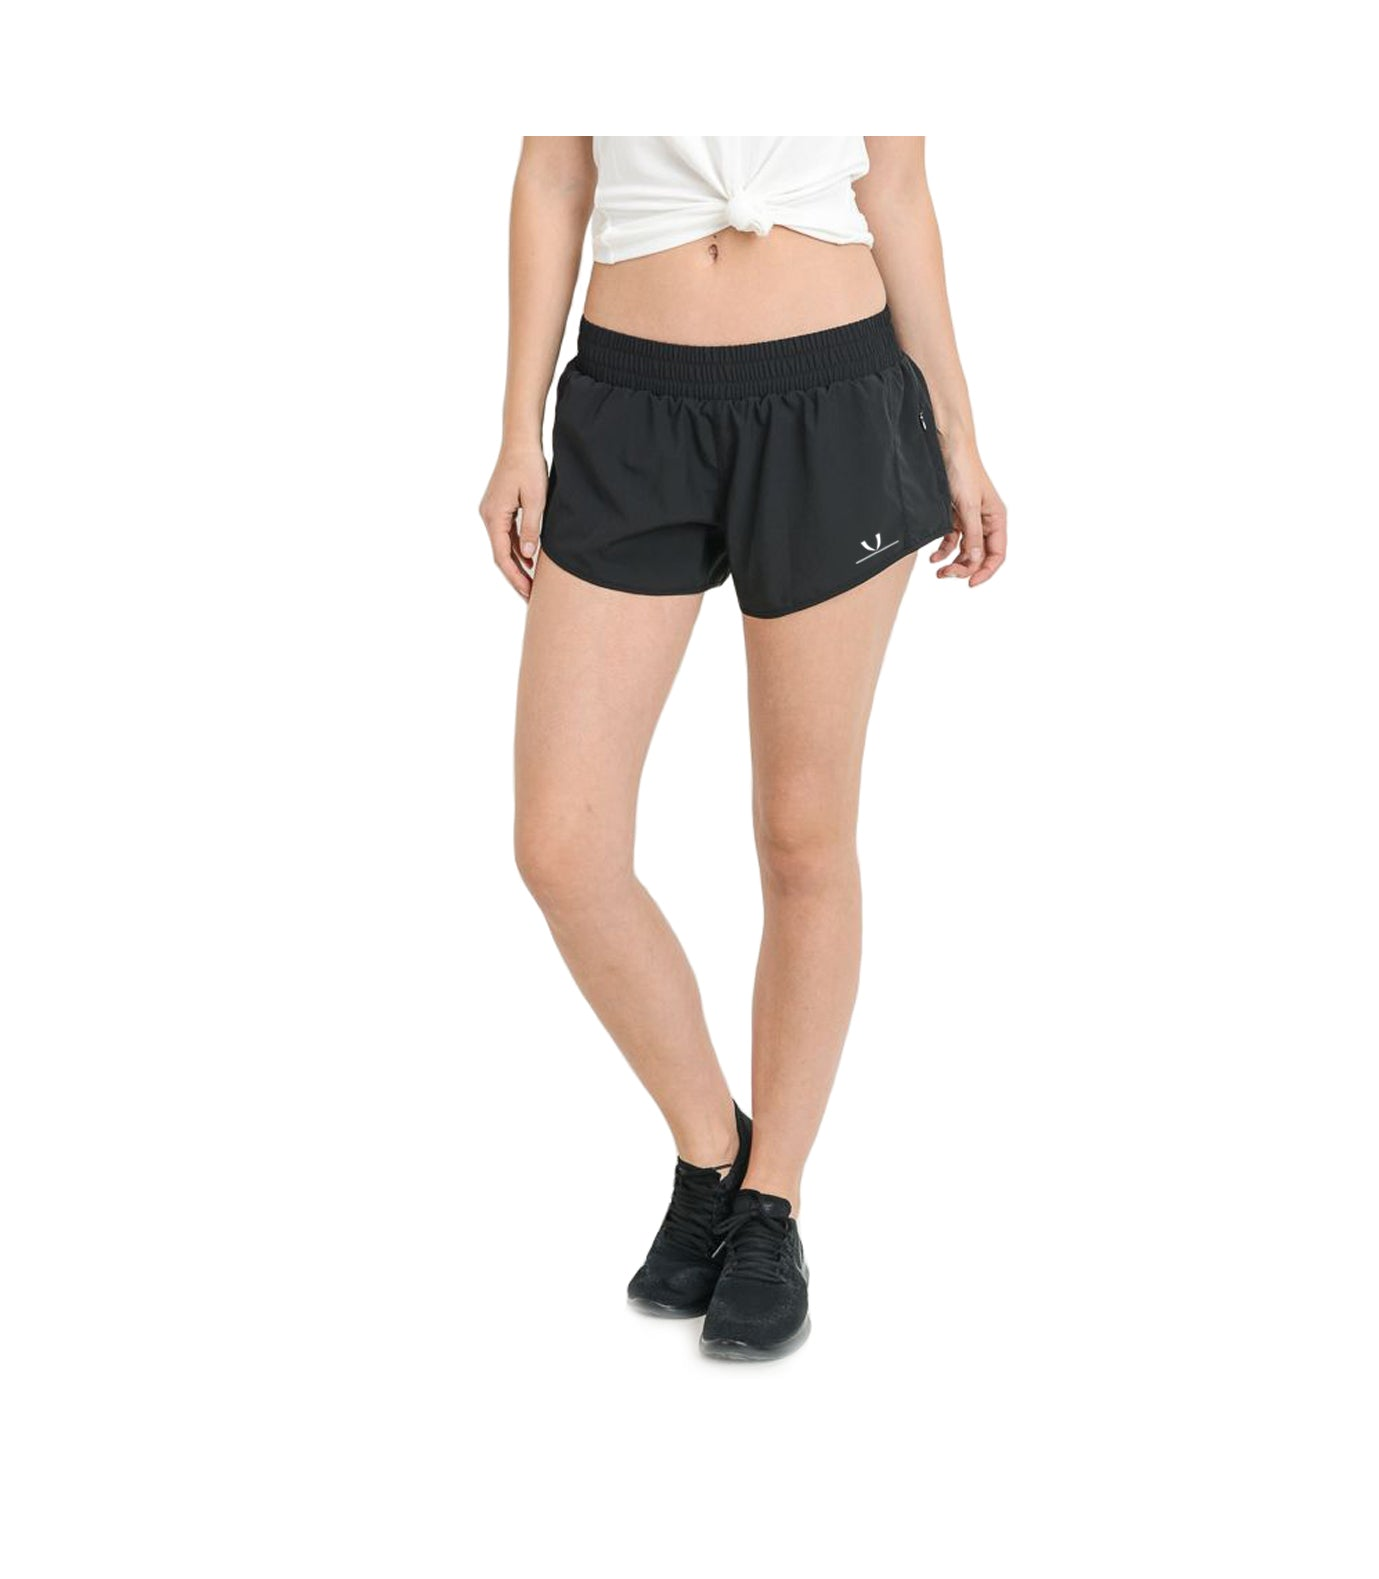 Gathered Dolphin Short Shorts